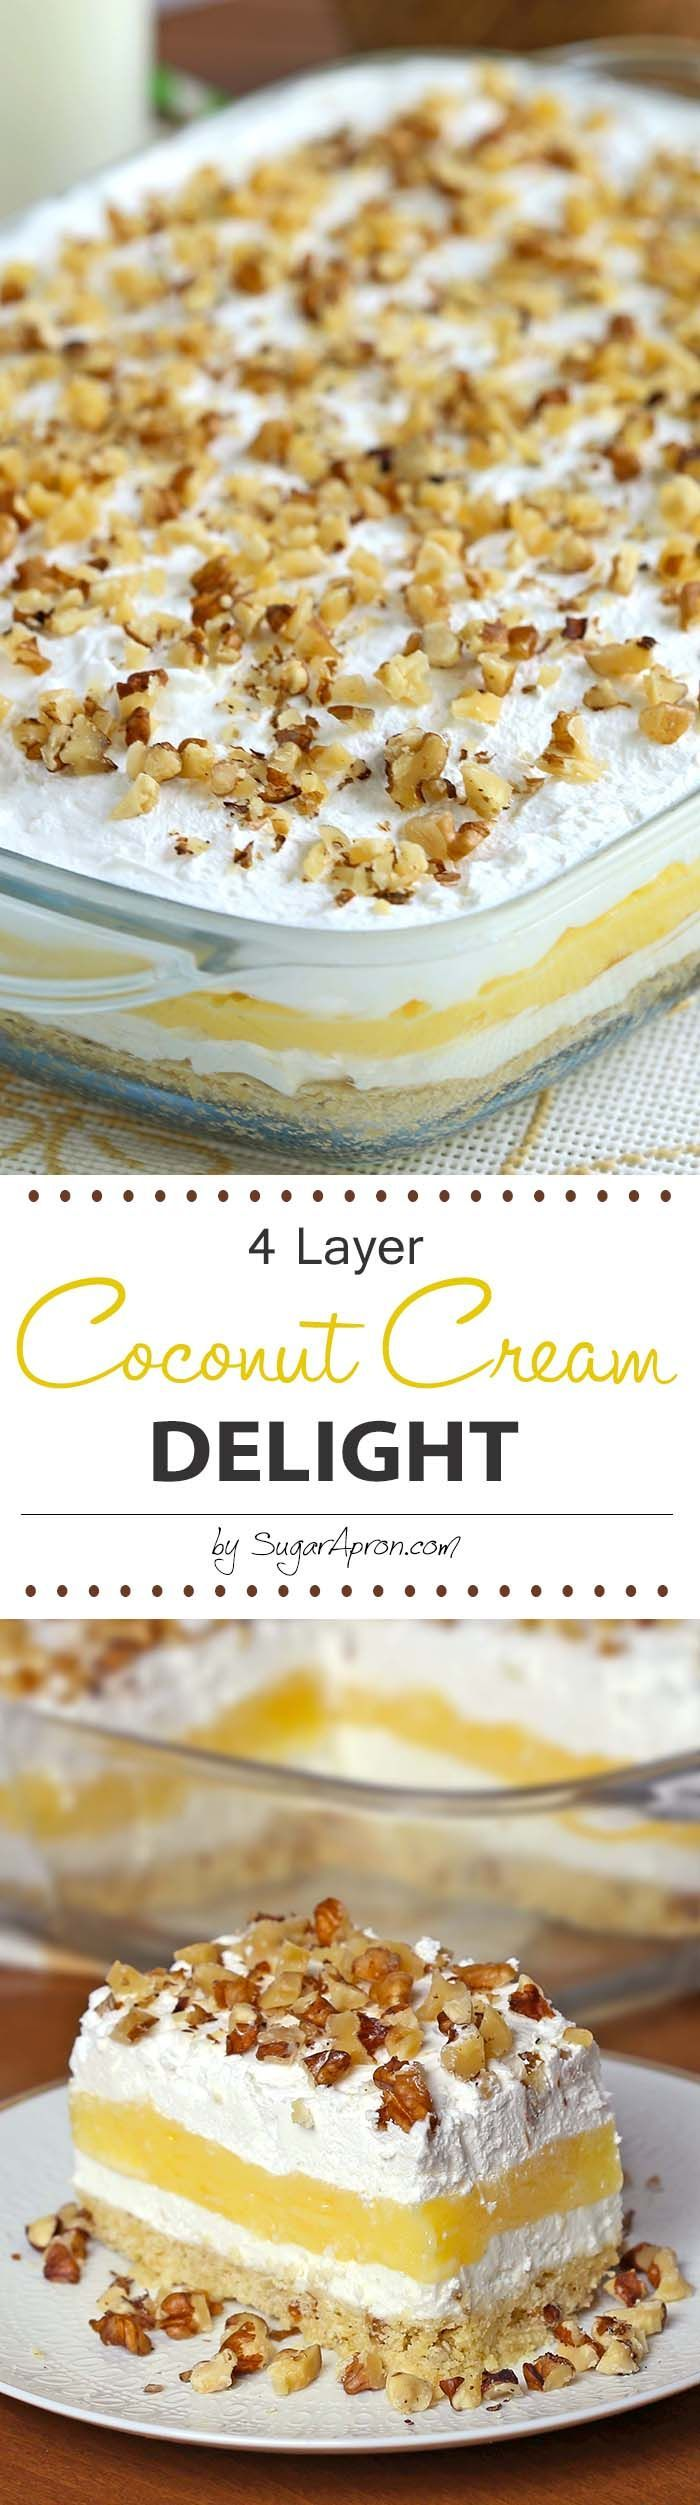 Coconut Cream Delight